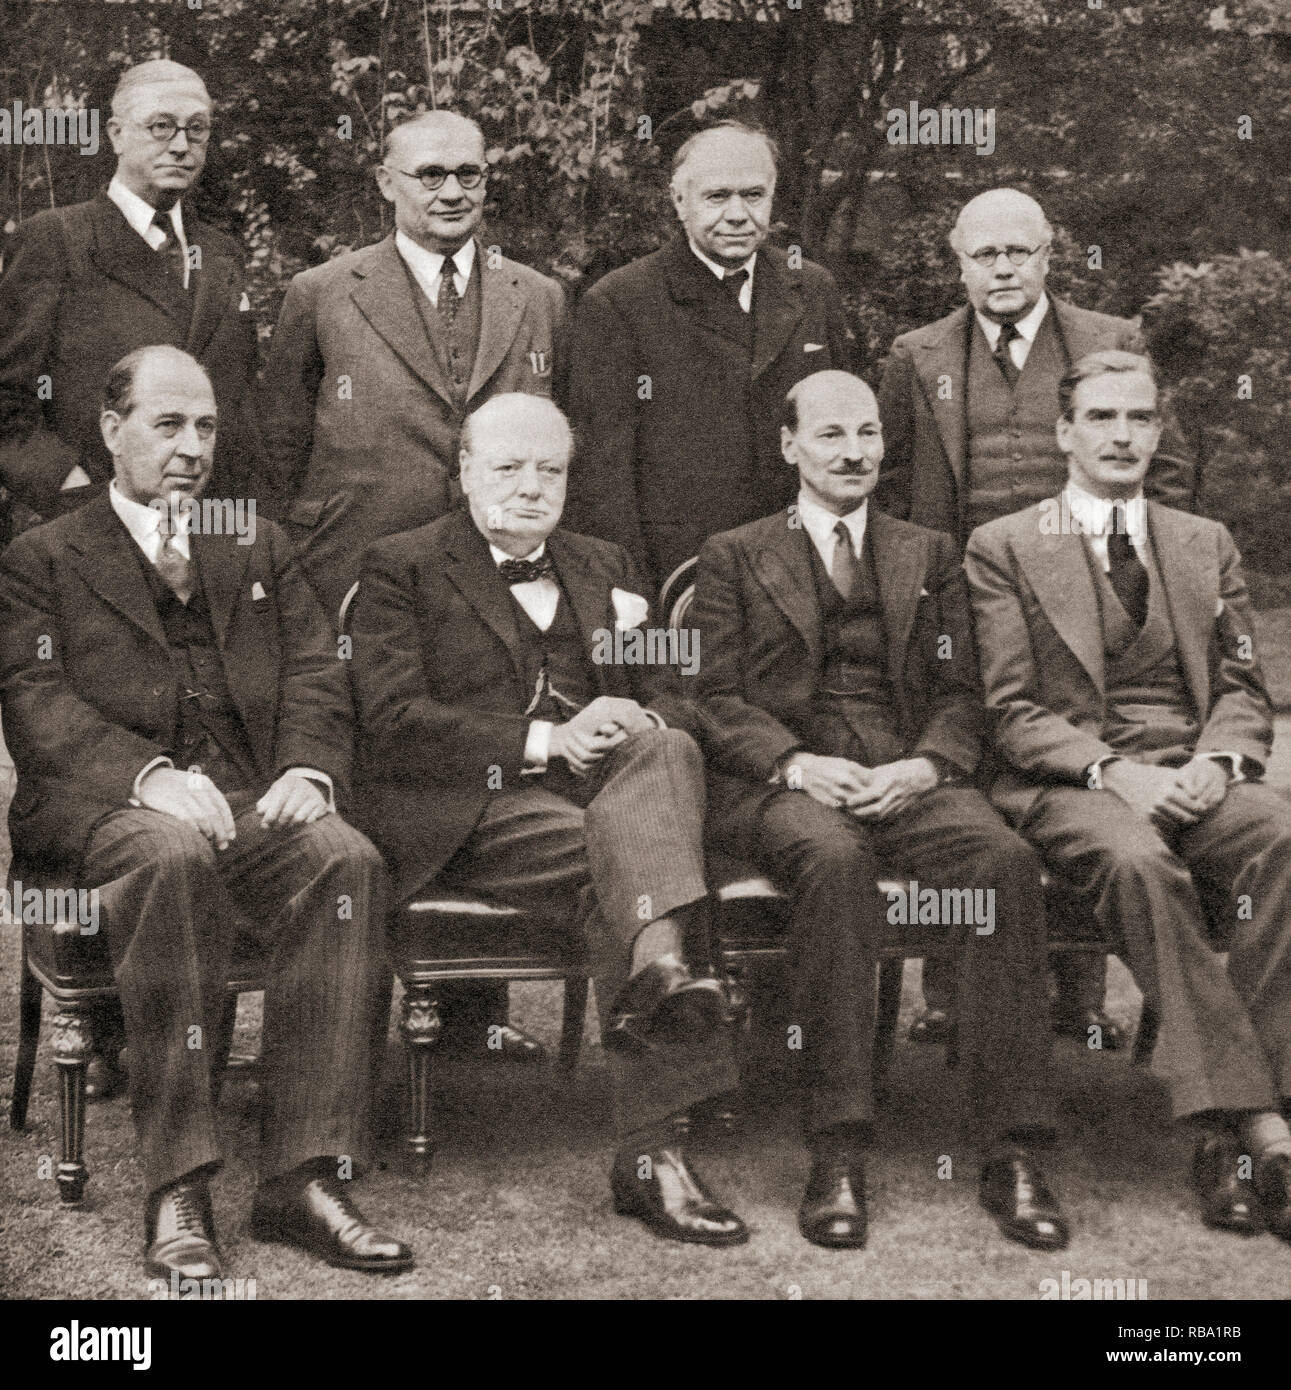 Mr. Churchill's War Cabinet in the spring of 1941. Back row, left to right, Mr. Arthur Greenwood, Minister without Portfolio, Mr. Ernest Bevin, Minister of Labour, Lord Beaverbrook, Minister of Aircraft Production, Sir Kingsley Wood, Chancellor of the Exchequer.  Front row, left to right, Sir John Anderson, Lord President of the Council, Mr. Winston Churchill, Prime Minister, Mr. Clement Attlee, Lord Privy Seal, Mr. Anthony Eden, Foreign Secretary.  Sir Winston Leonard Spencer-Churchill, 1874 –1965. British politician, statesman, army officer, and writer, who was Prime Minister of th - Stock Image